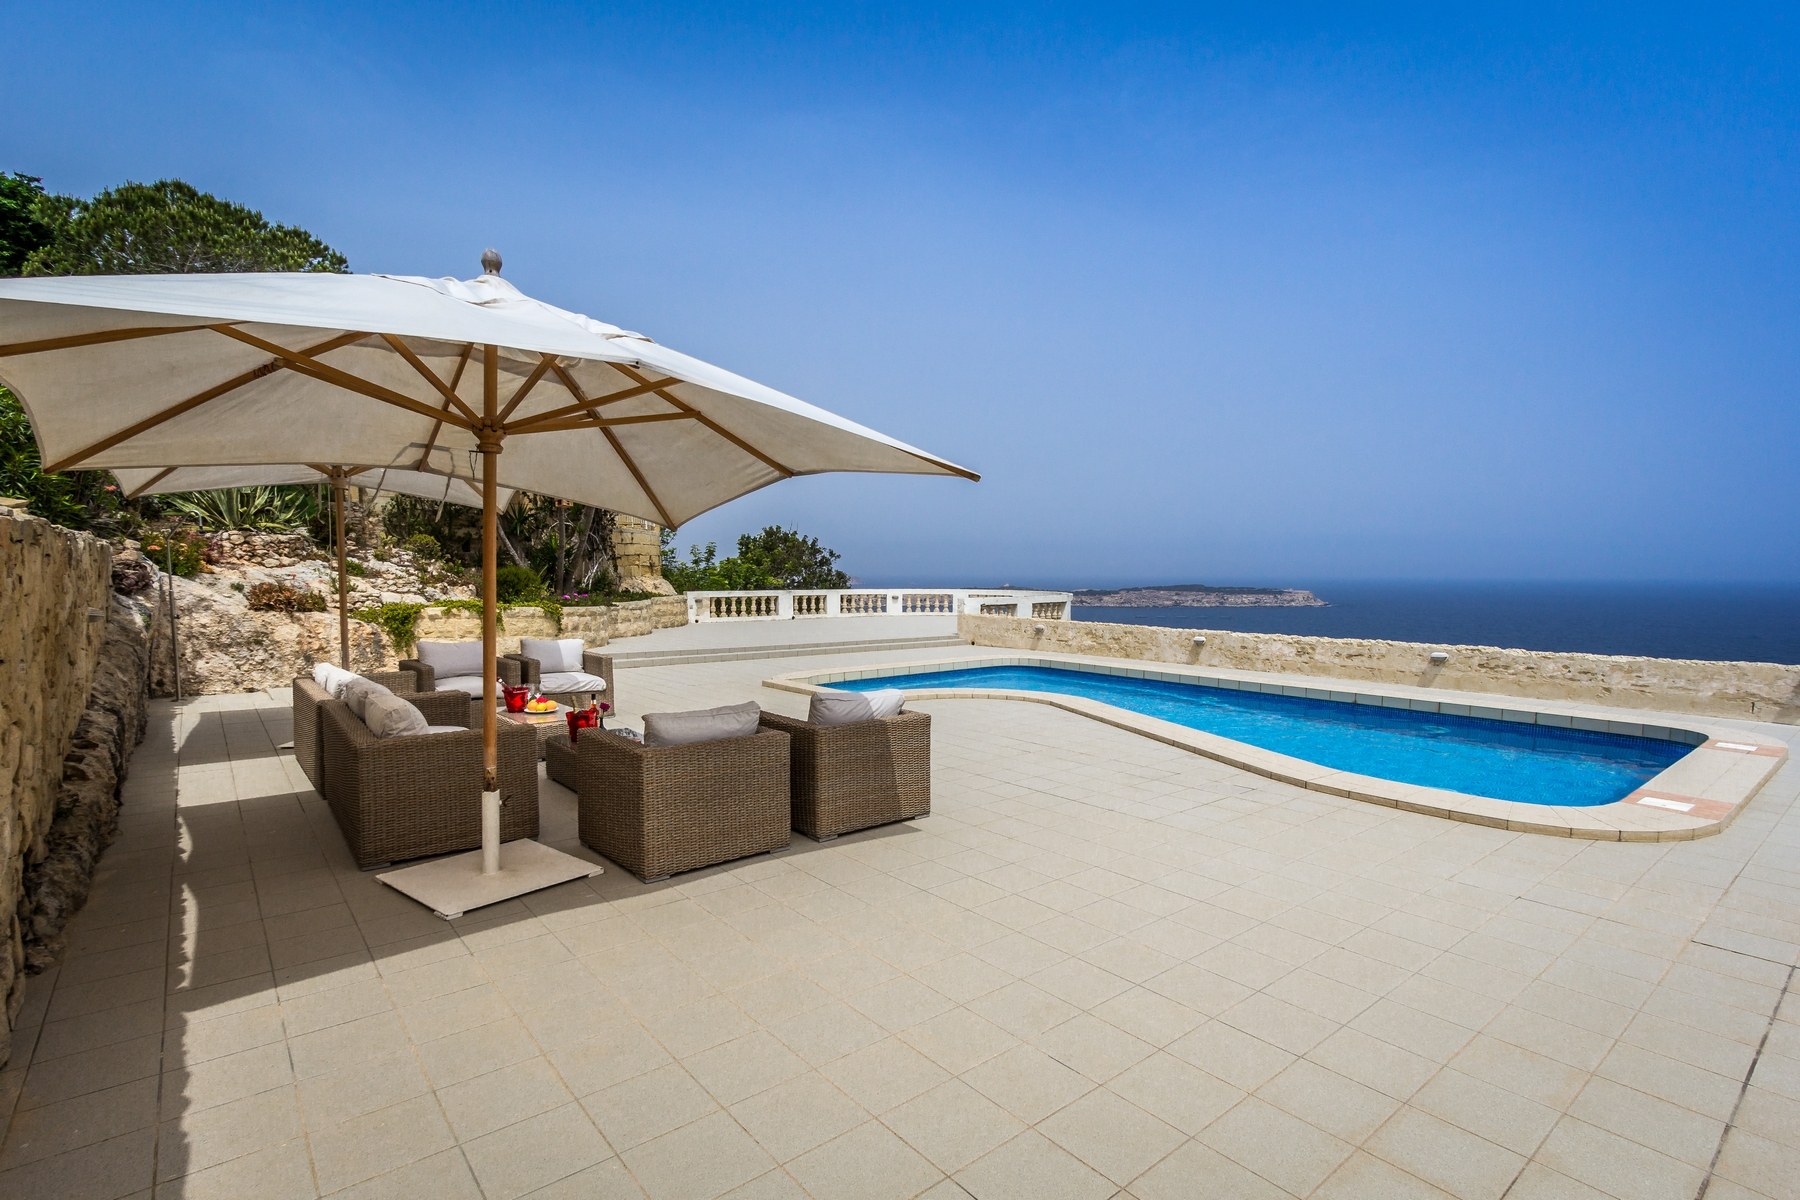 Single Family Home for Rent at Seafront Detached Villa Mellieha, Malta